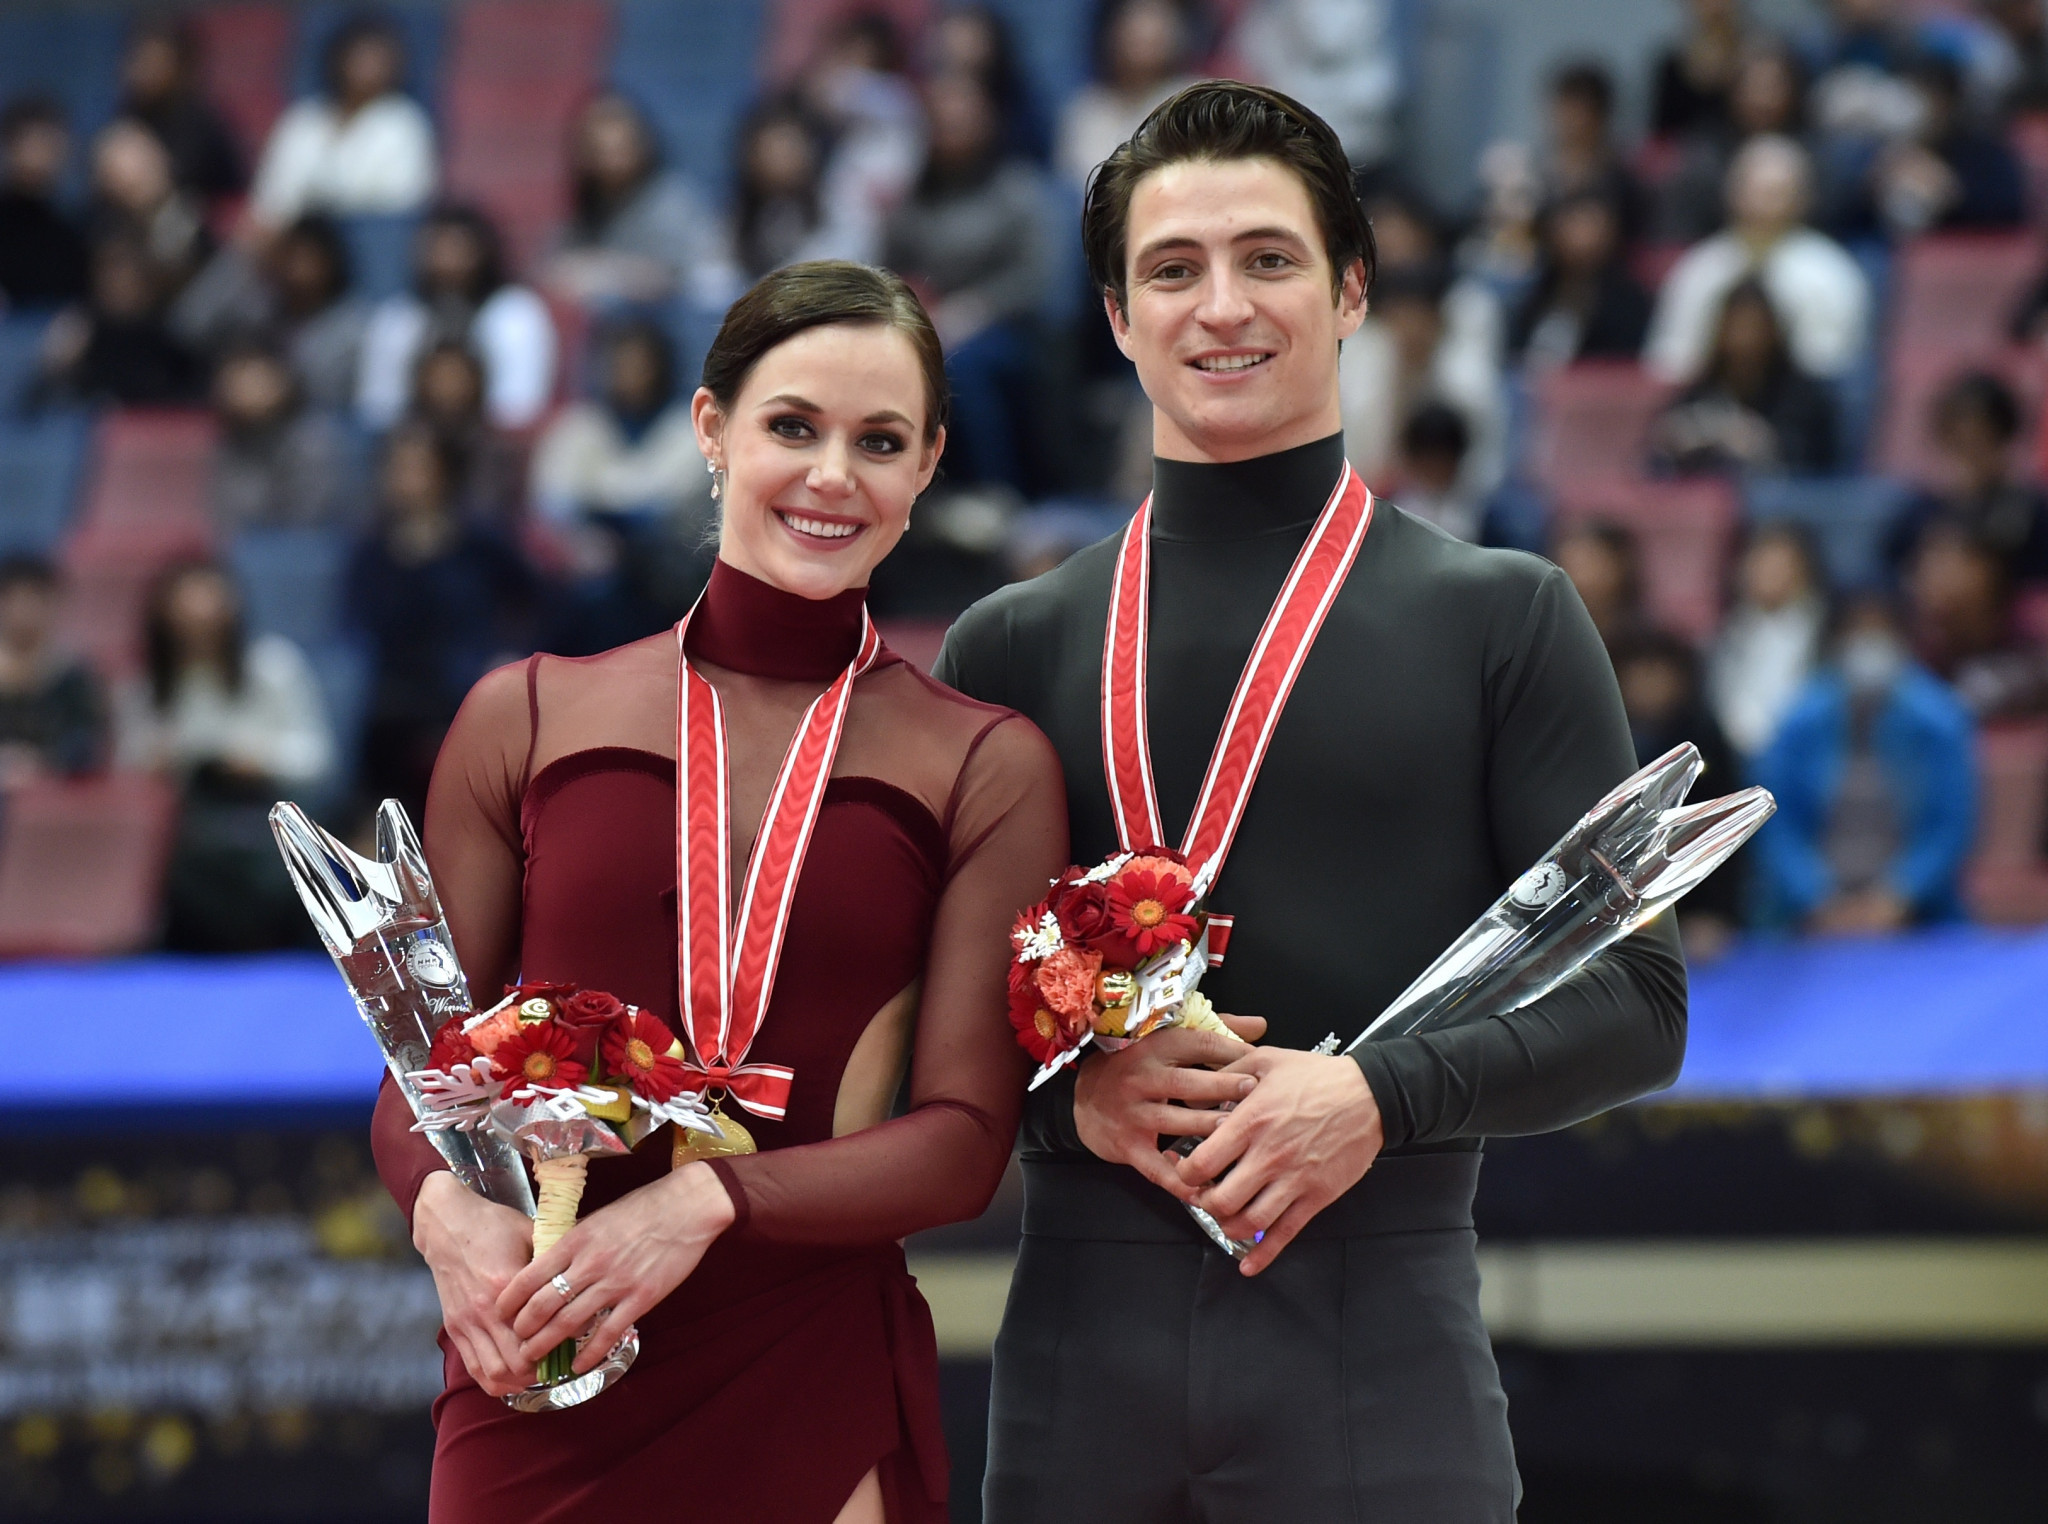 Tessa Virtue and Scott Moir, of Canada, pose on the podium during the awards ceremony for the ice dance free dance event of the Grand Prix of Figure Skating 2017/2018 NHK Trophy in Osaka ©Getty Images